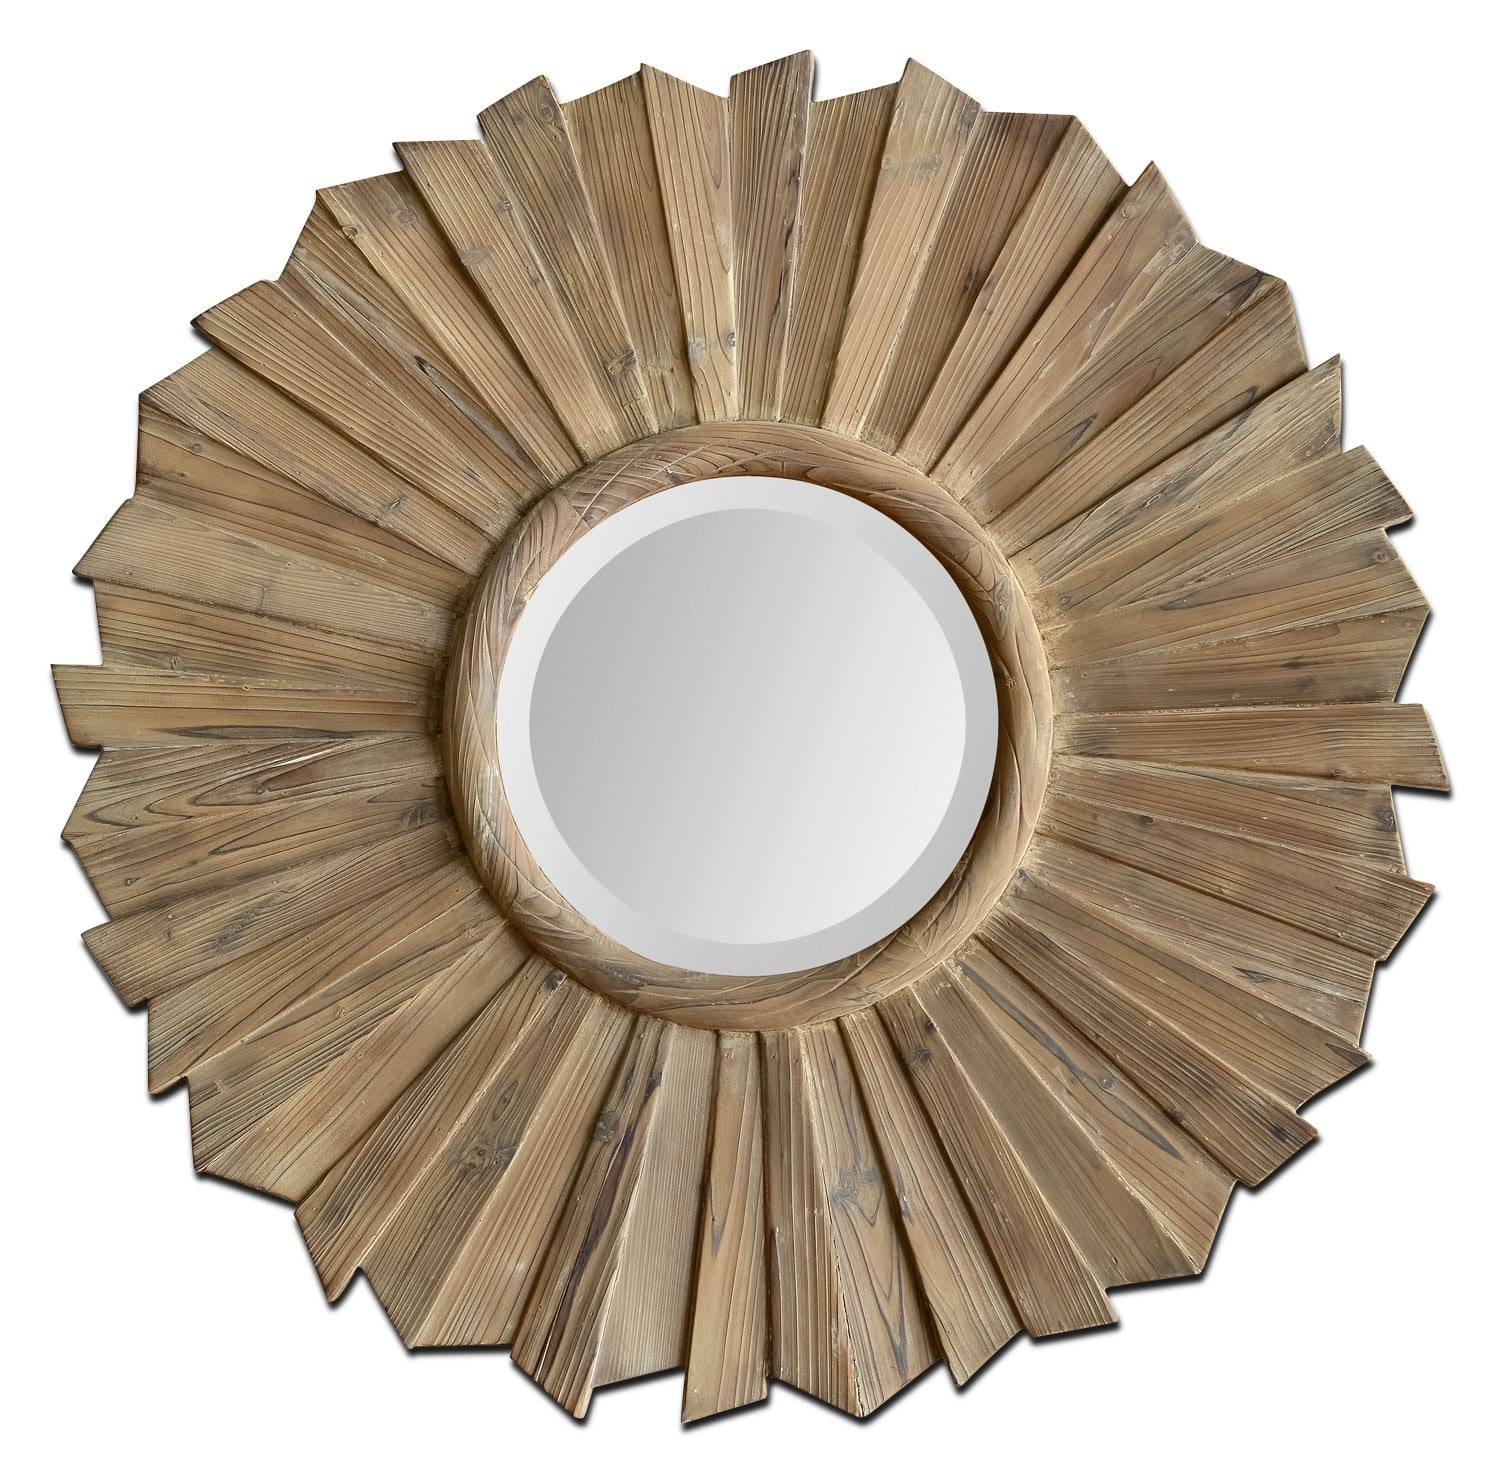 Home Accessories - Kendra Mirror